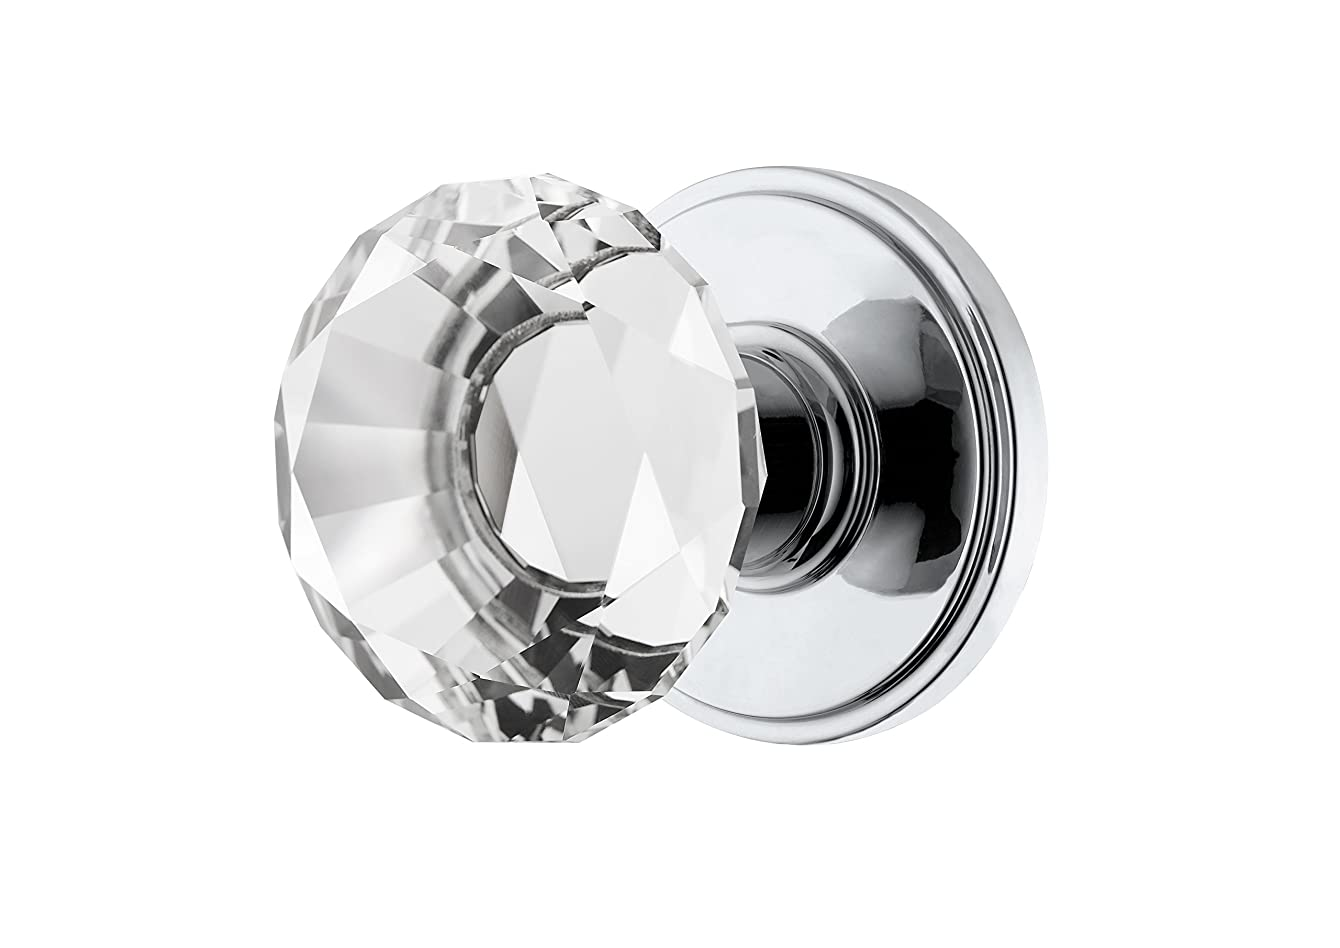 Decor Living, AMG and Enchante Accessories, Diamond Crystal Door Knobs with Lock, Privacy Function for Bed and Bath, Venus Collection, Polished Chrome